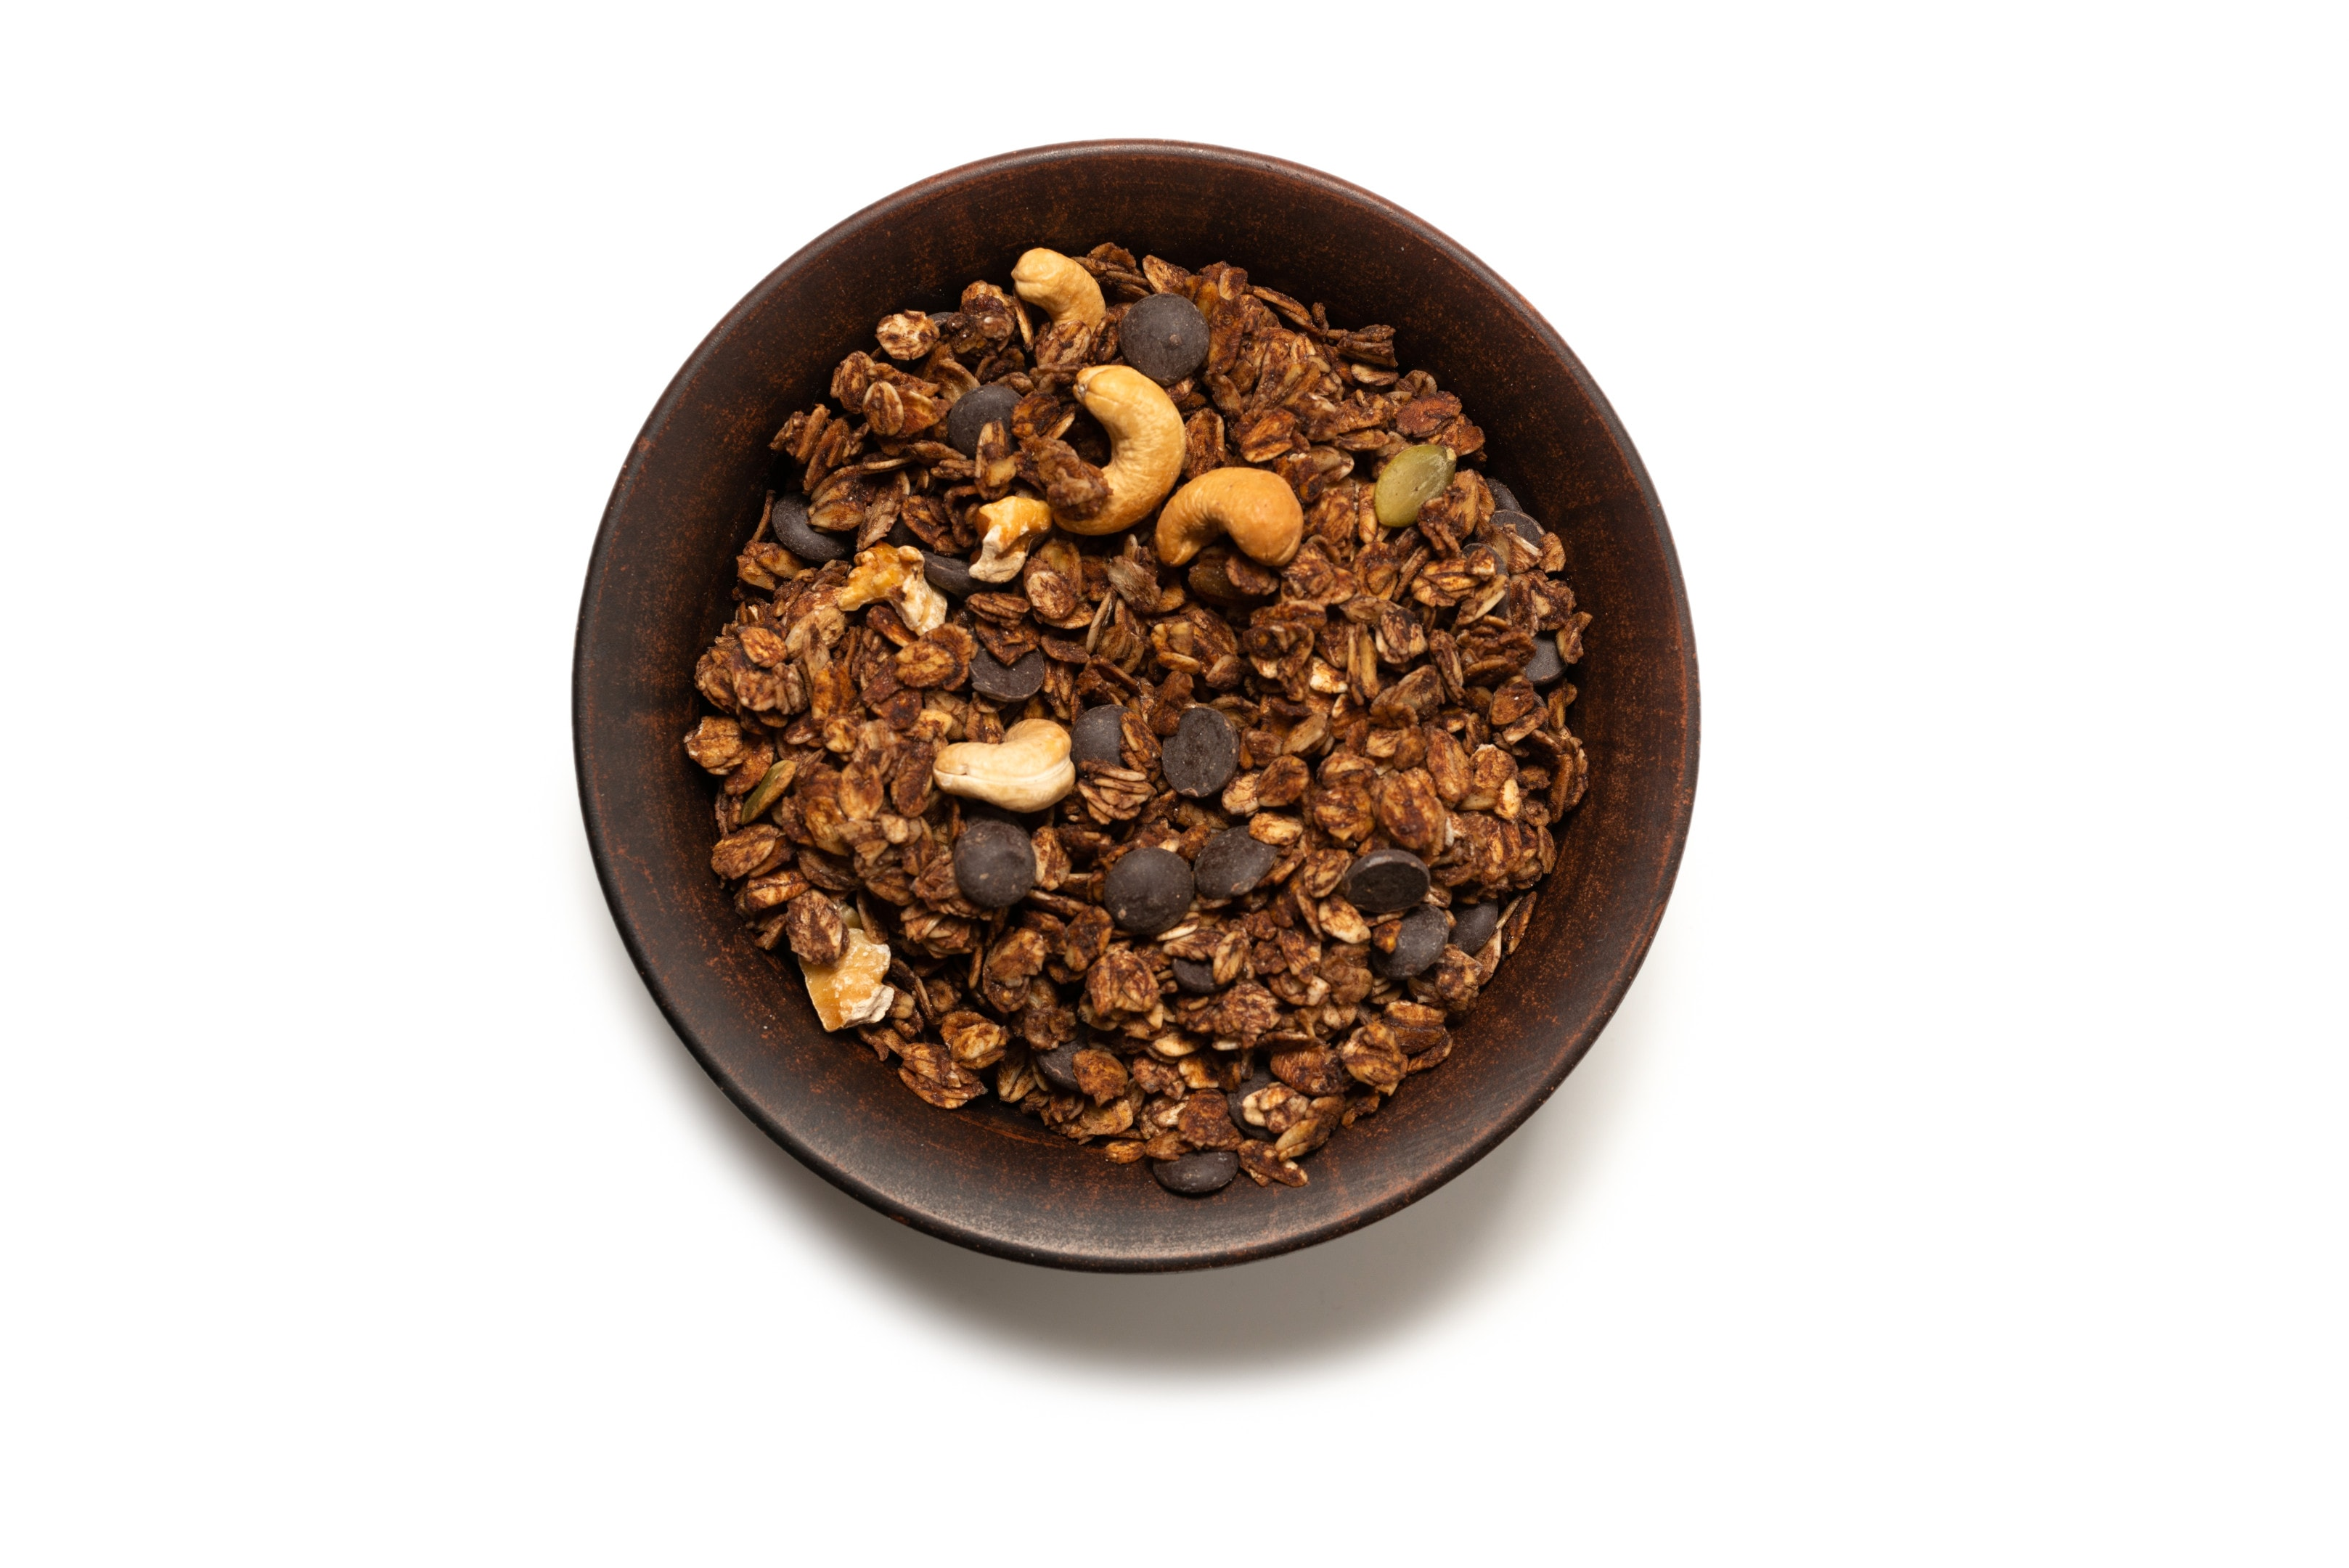 Whole grain oats granola cereal with seeds, nuts and dark chocolate